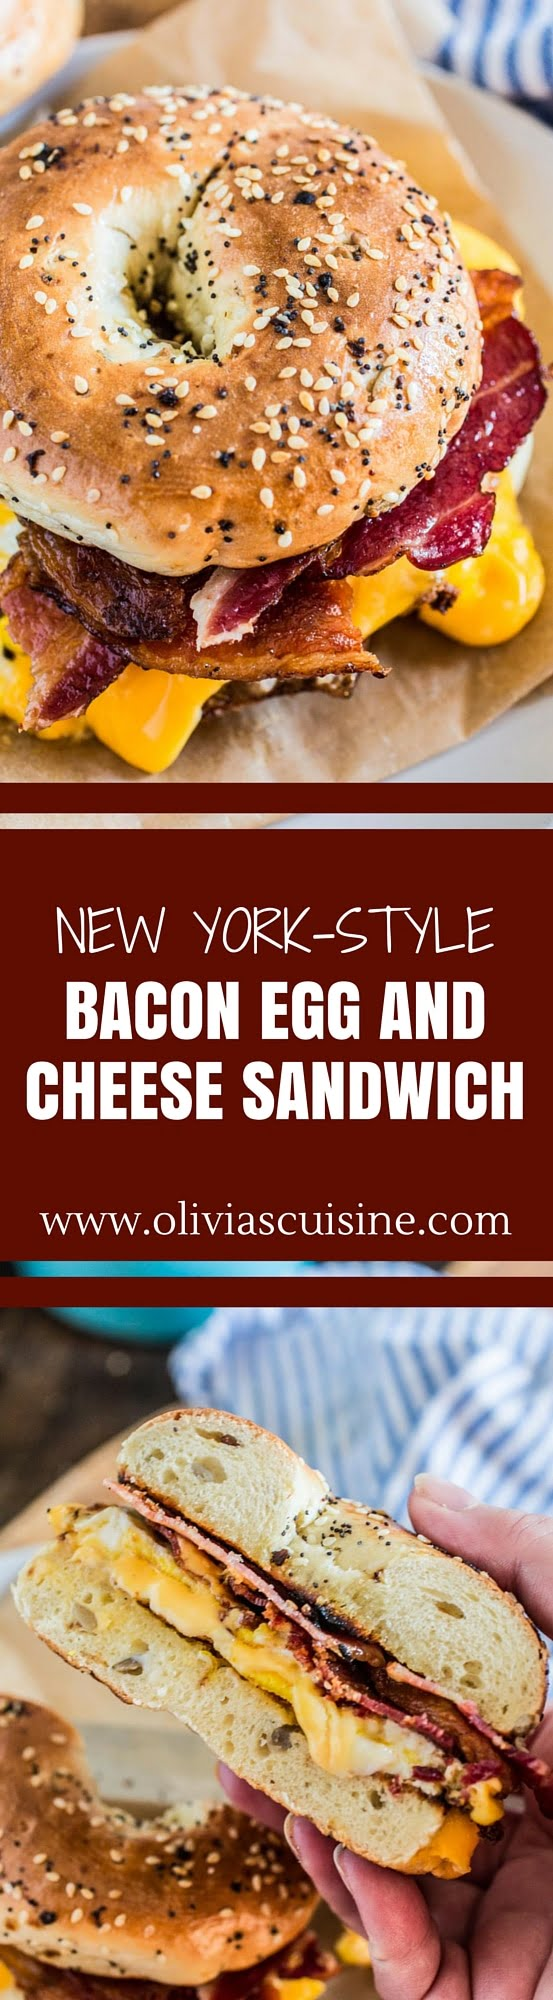 New York-Style Bacon Egg and Cheese Sandwich | www.oliviascuisine.com | The breakfast sandwich that conquered the Big Apple. No true New Yorker starts their day without a delicious and gooey B.E.C!